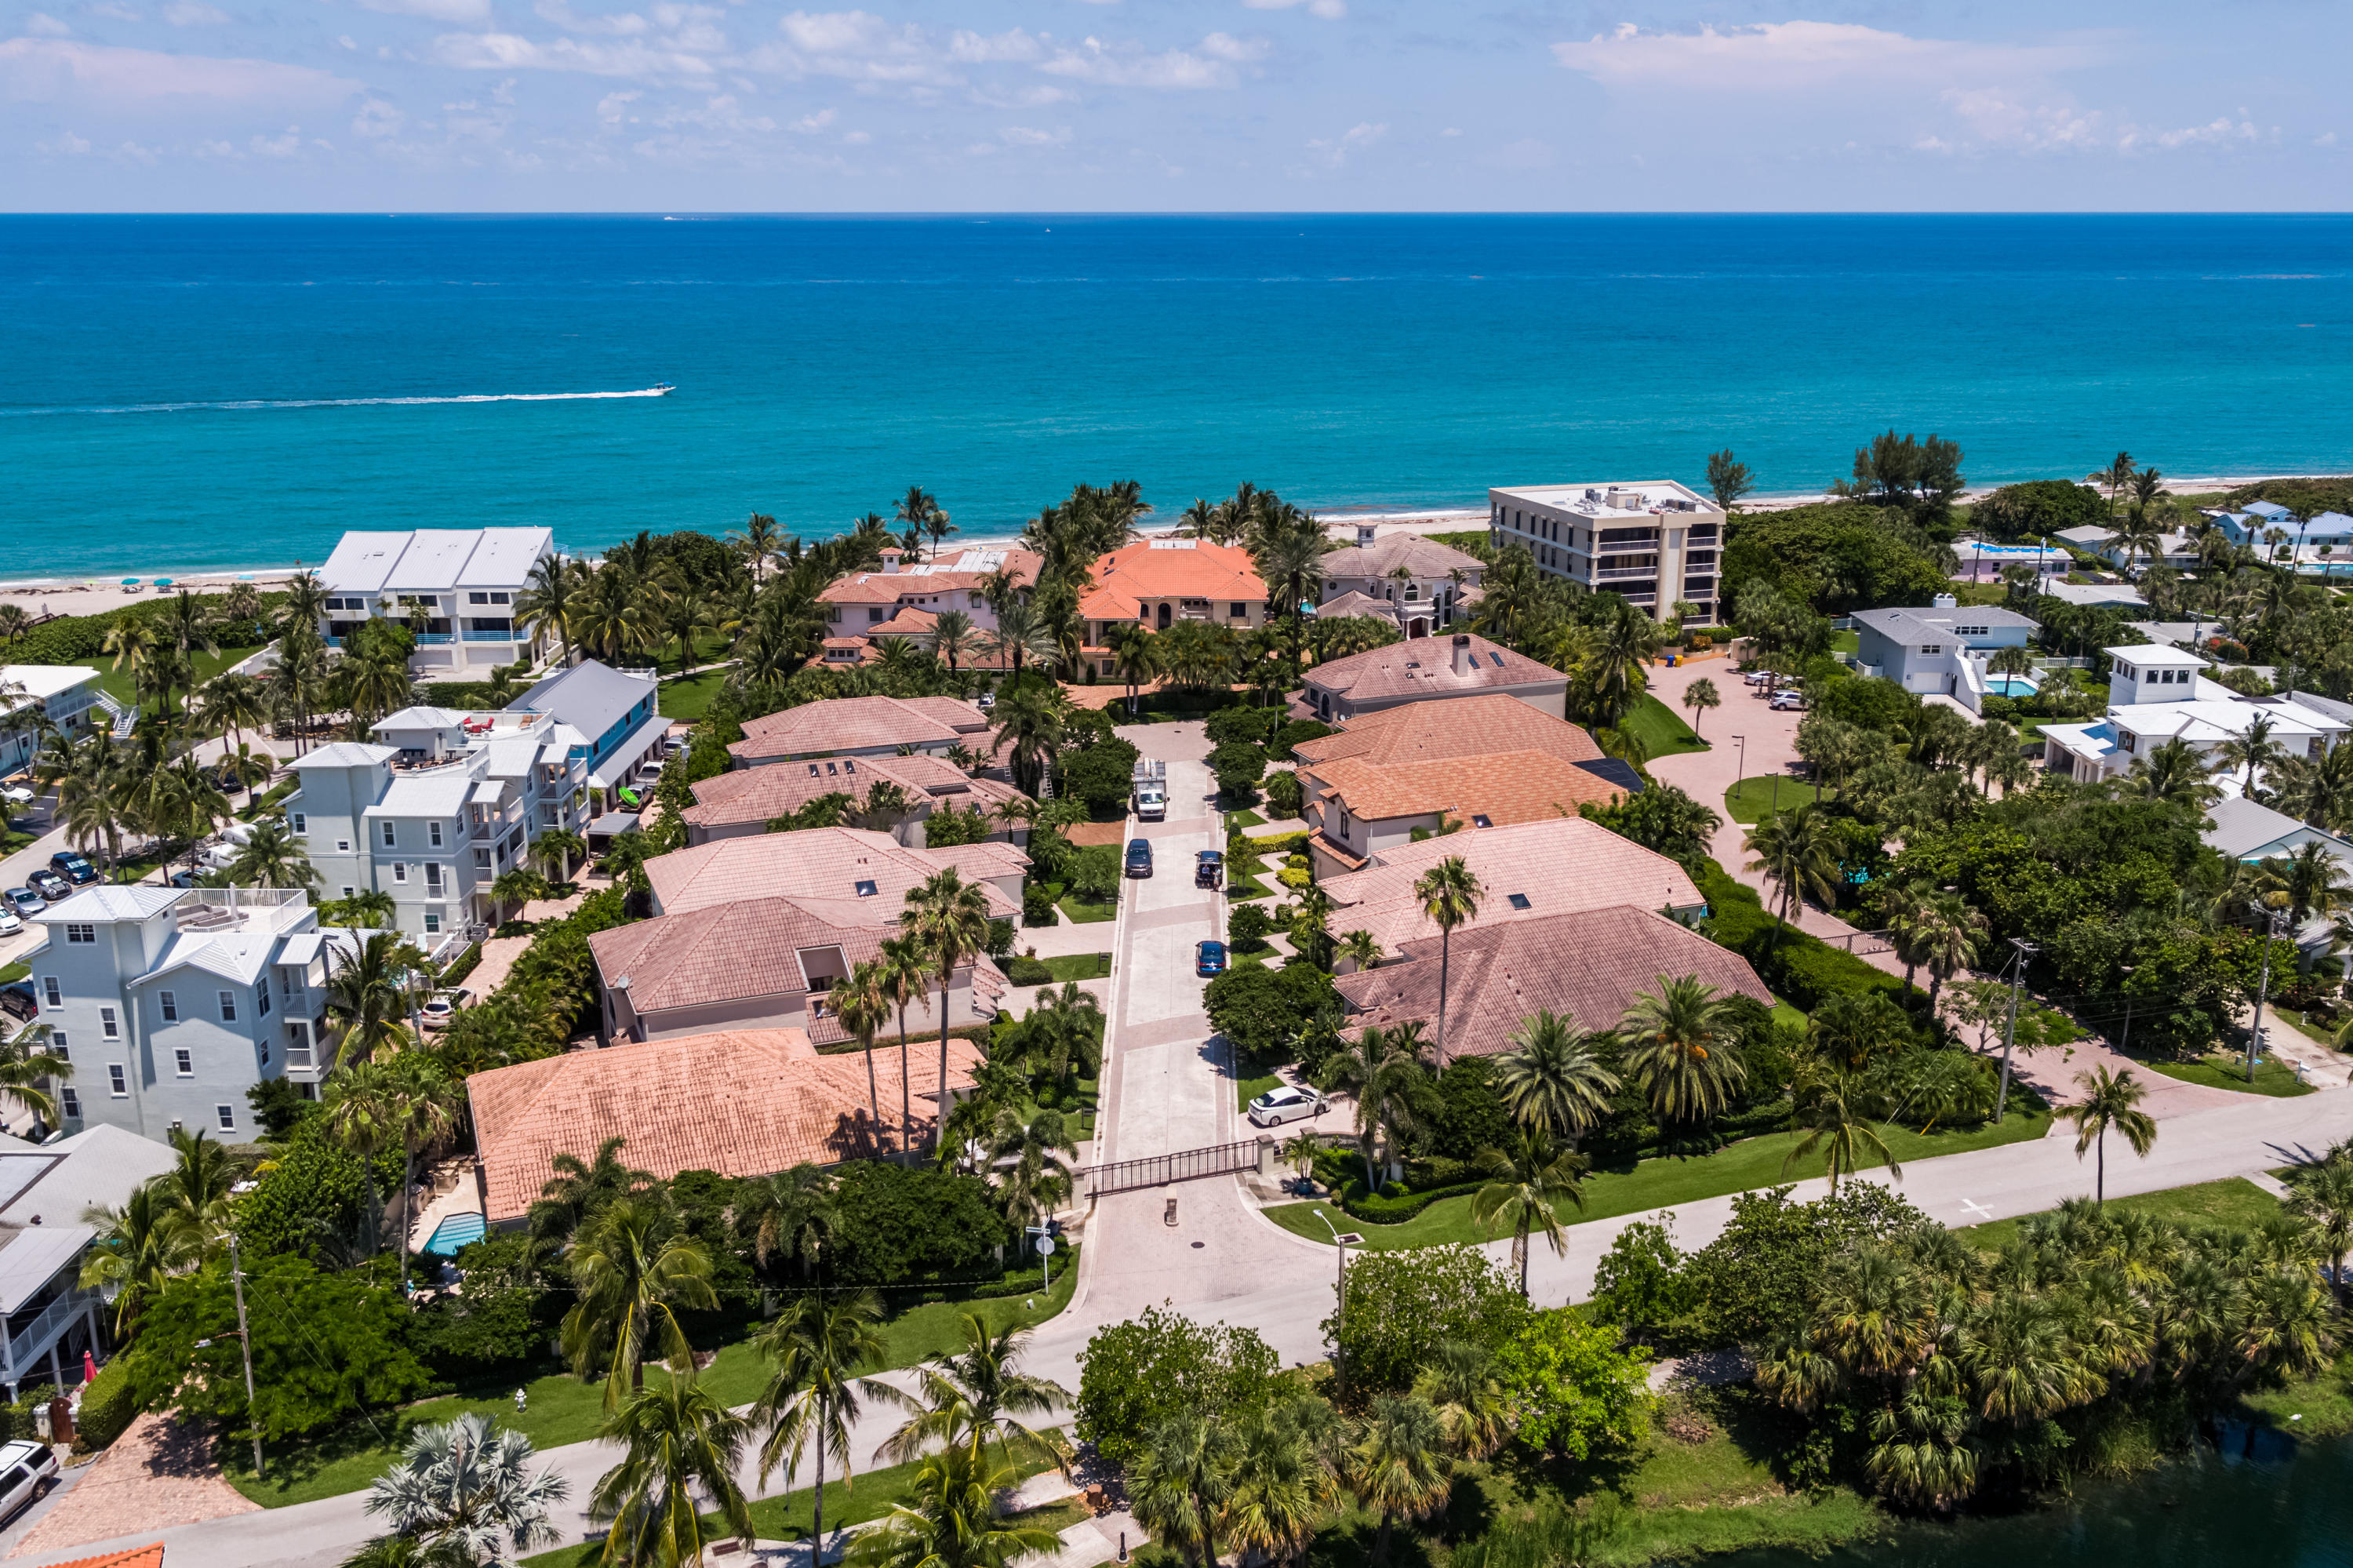 New Home for sale at 312 Alicante Drive in Juno Beach